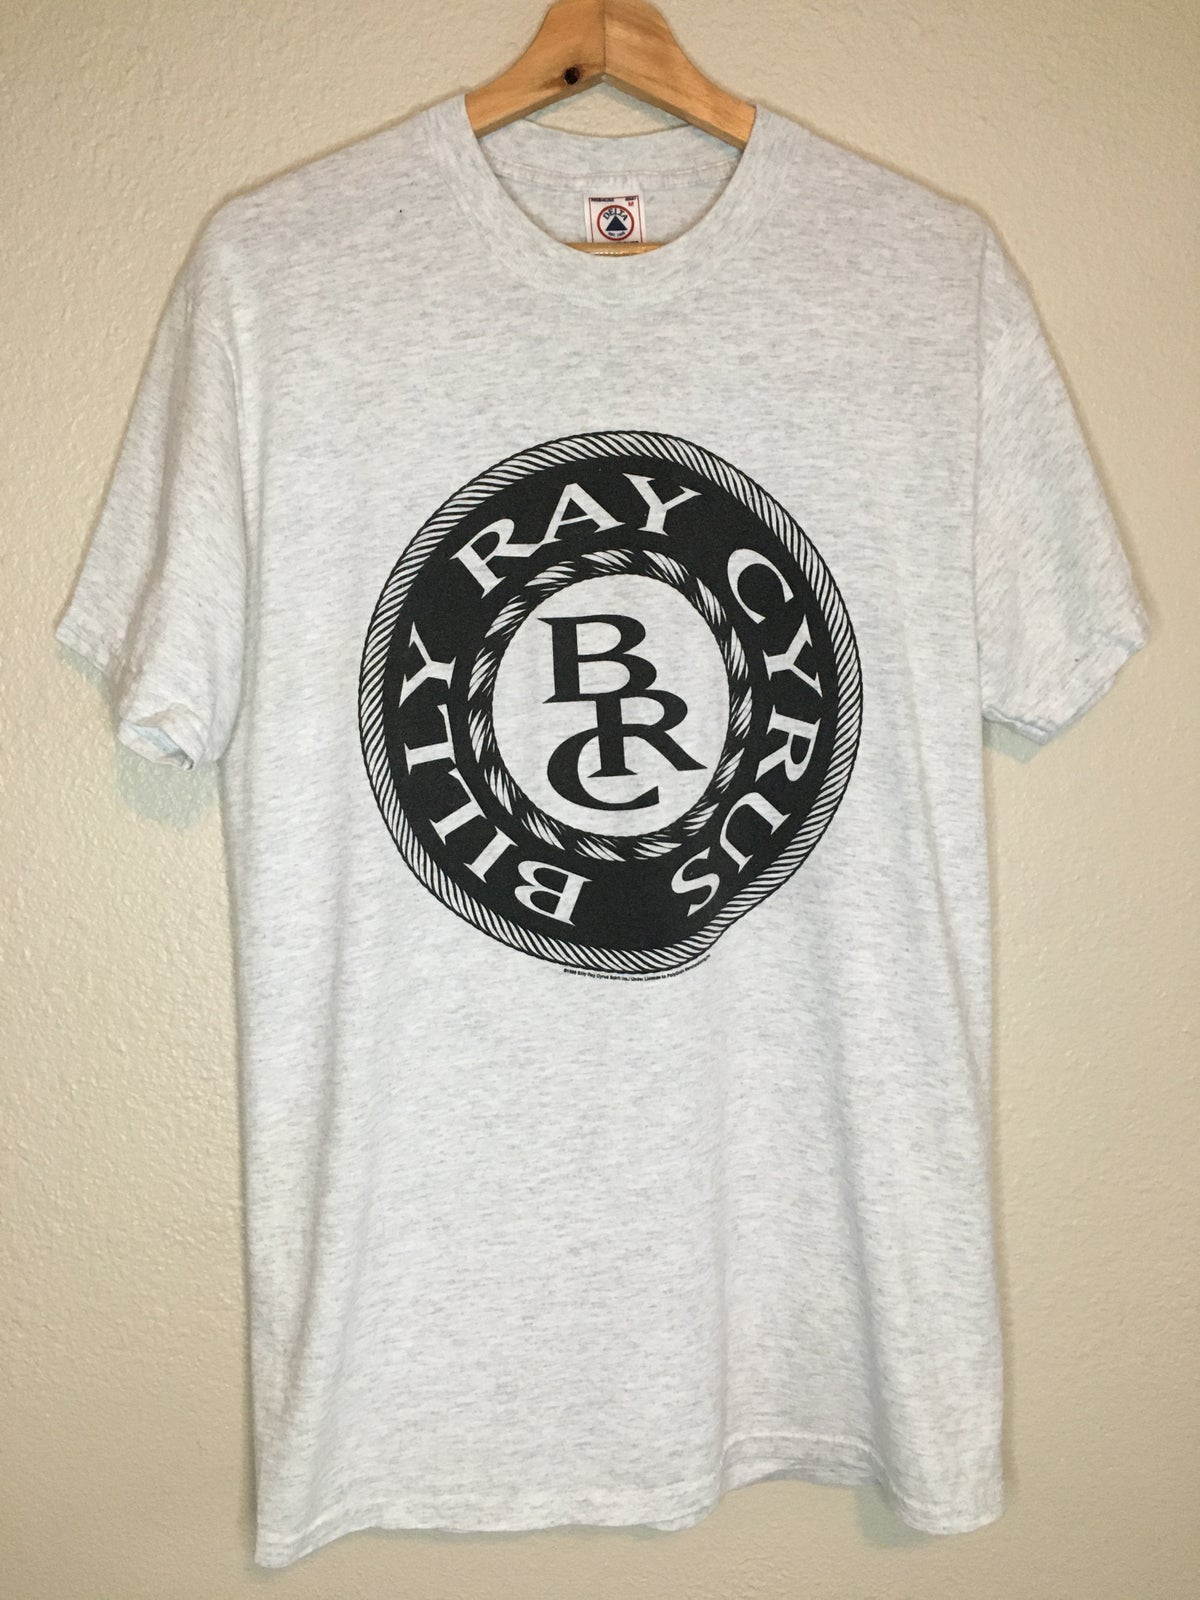 1998 Billy Ray Cyrus Country Awards Tee